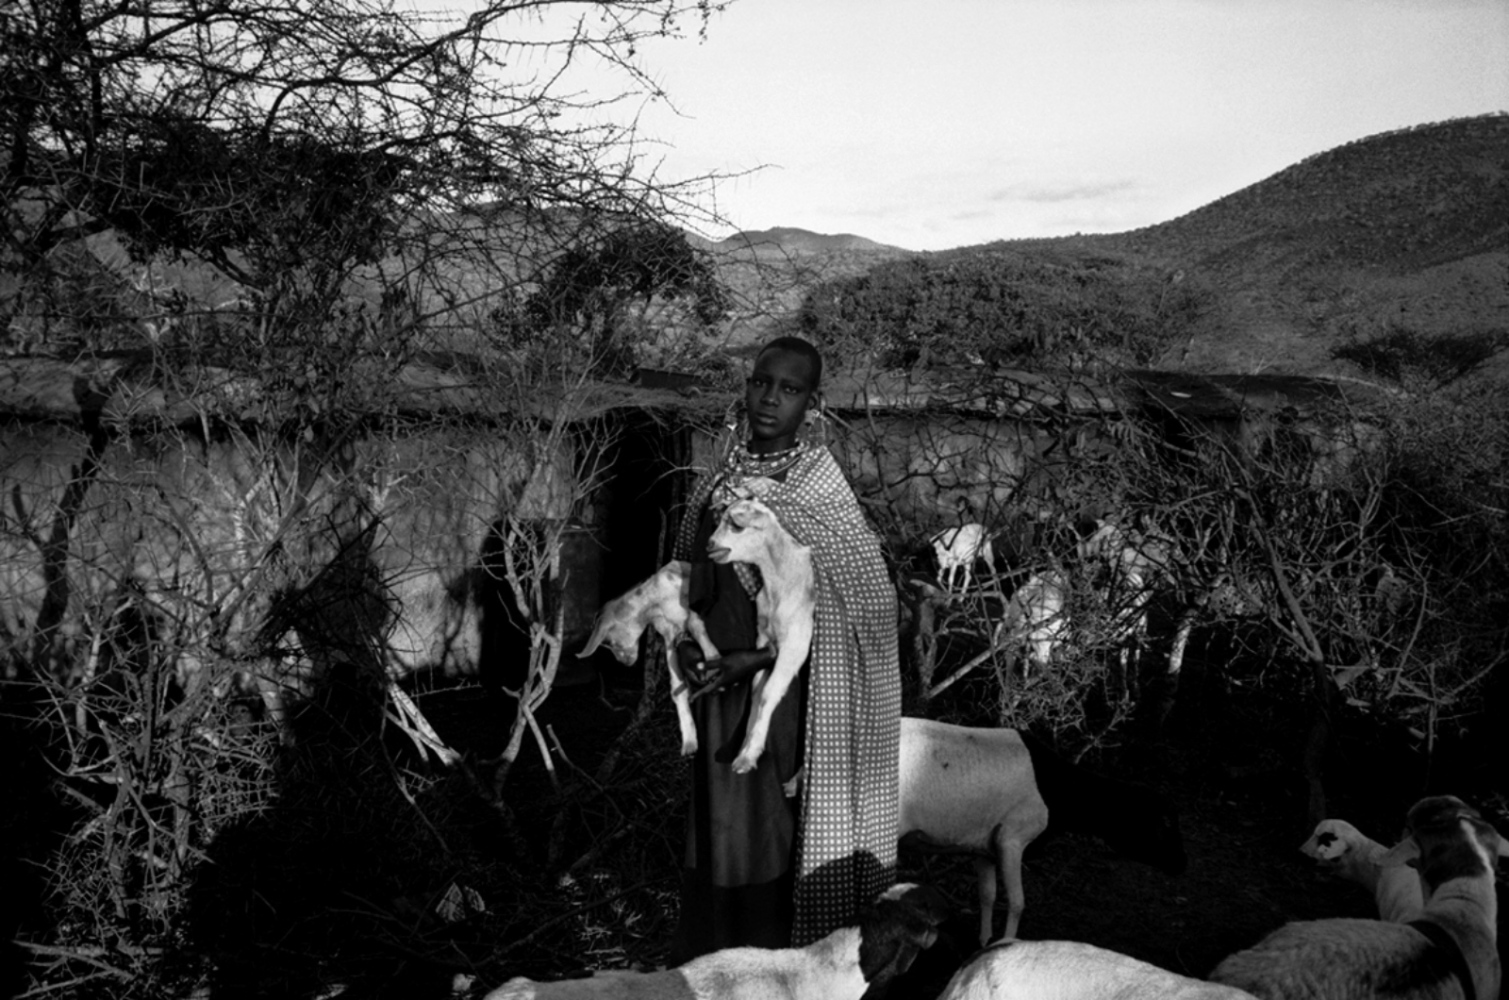 Girl Holding Lambs, Chyulu Hills, Kenya, August 2002